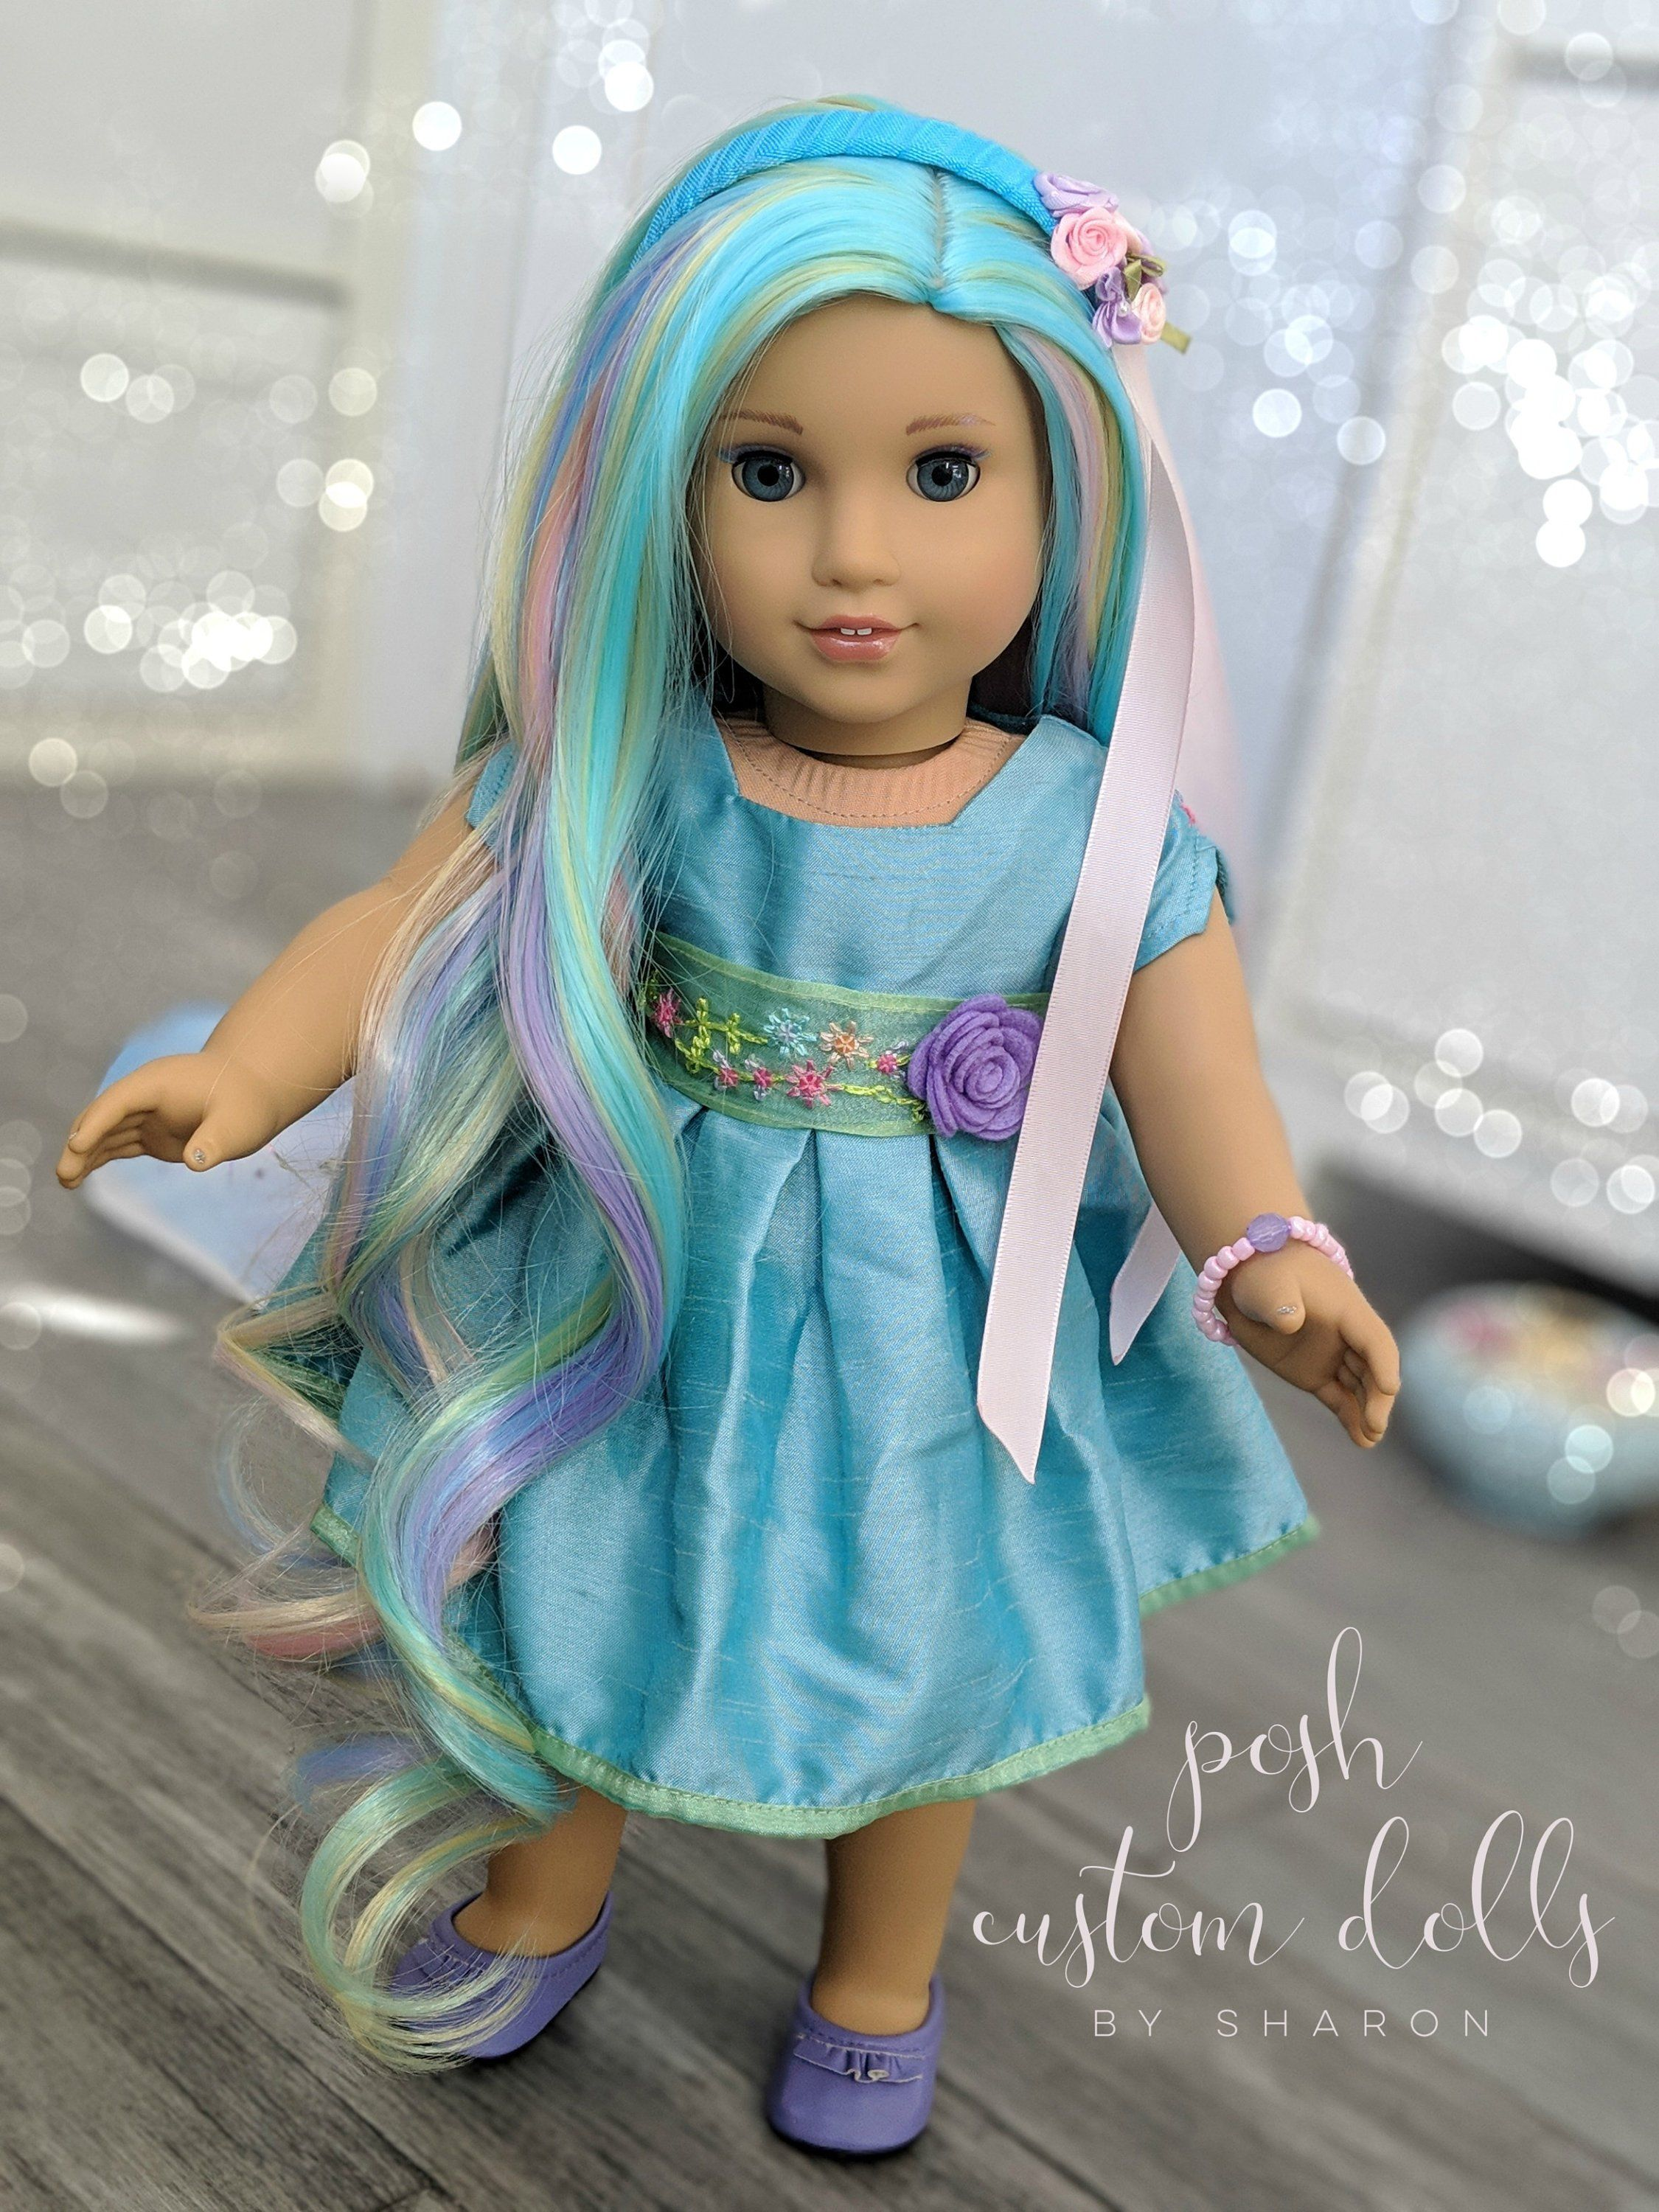 Custom American Girl Doll OOAK EXAMPLE ONLY - -Party Doll #americangirldollcrafts